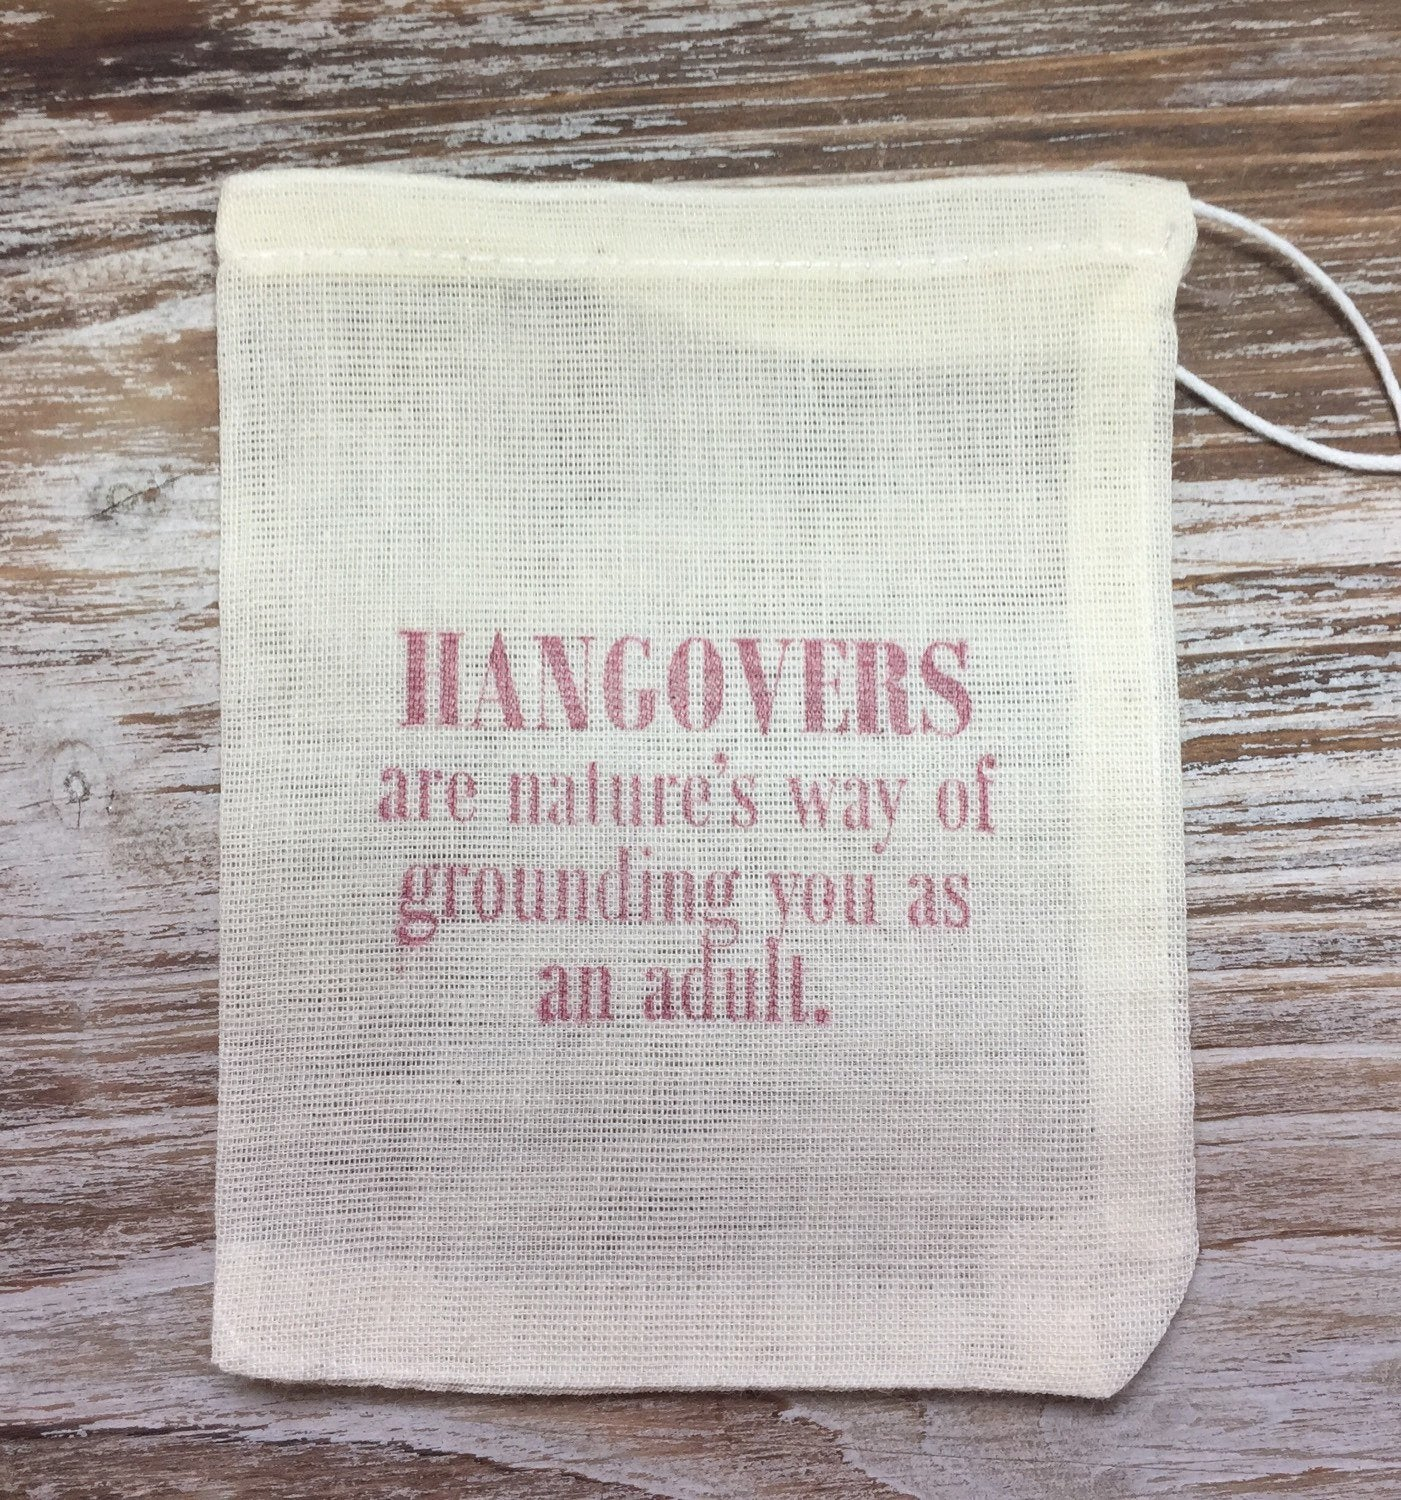 10 hangover kits, hangover bags, recovery kits, survival kits, hangover party favors, bachelor party favors, bacheloretty party